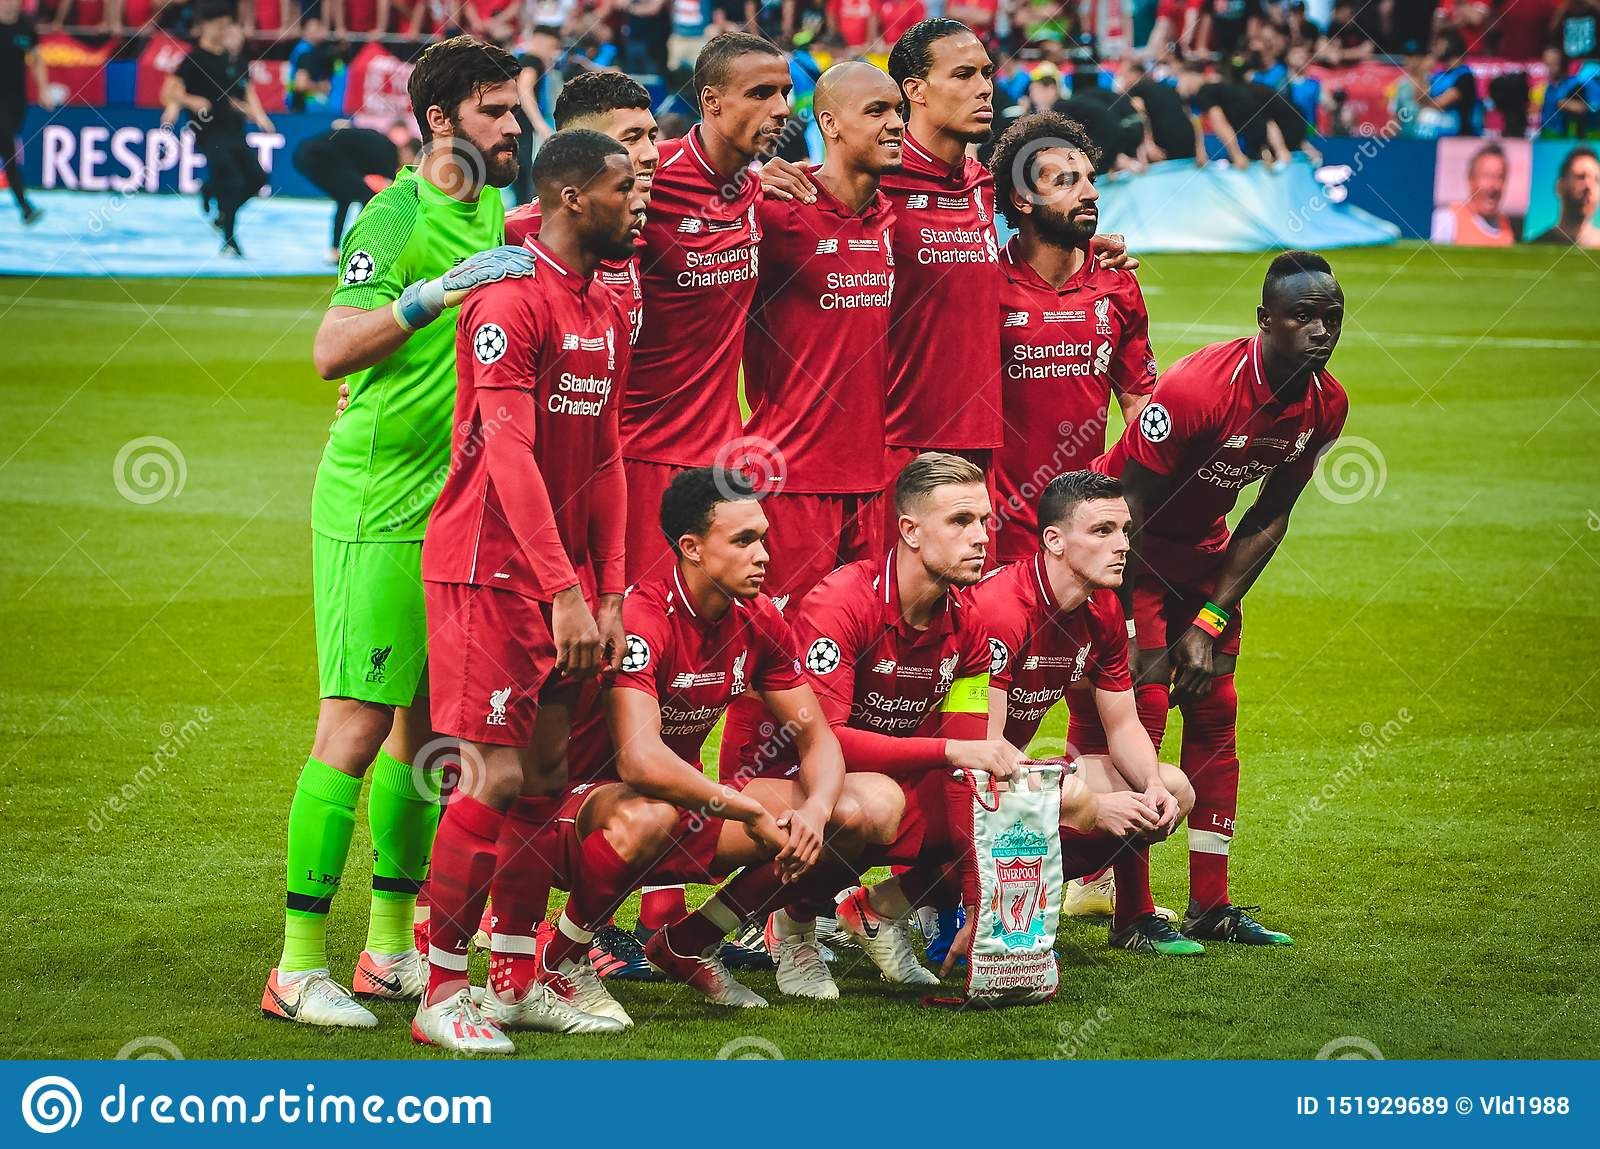 Madrid Spain 01 May 2019 The General Fc Liverpool Team Photo During The Uefa Champions League 2019 Final Match Between Fc Editorial Stock Image Image Of Workout Fans 151929689